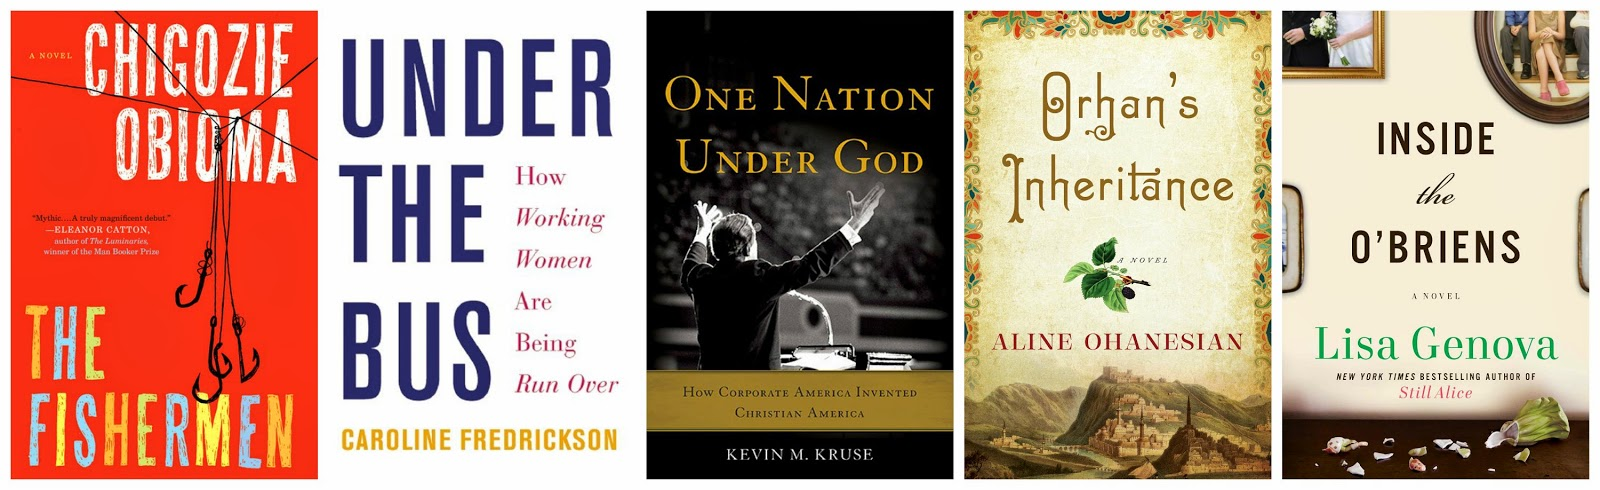 The Fishermen, by Chigozie Obioma; Under the Bus by Caroline Frederickson; One Nation Under God by Kevin Kruse; Orhan's Inheritance by Aline Ohanesian; Inside the O'Briens by Lisa Genova